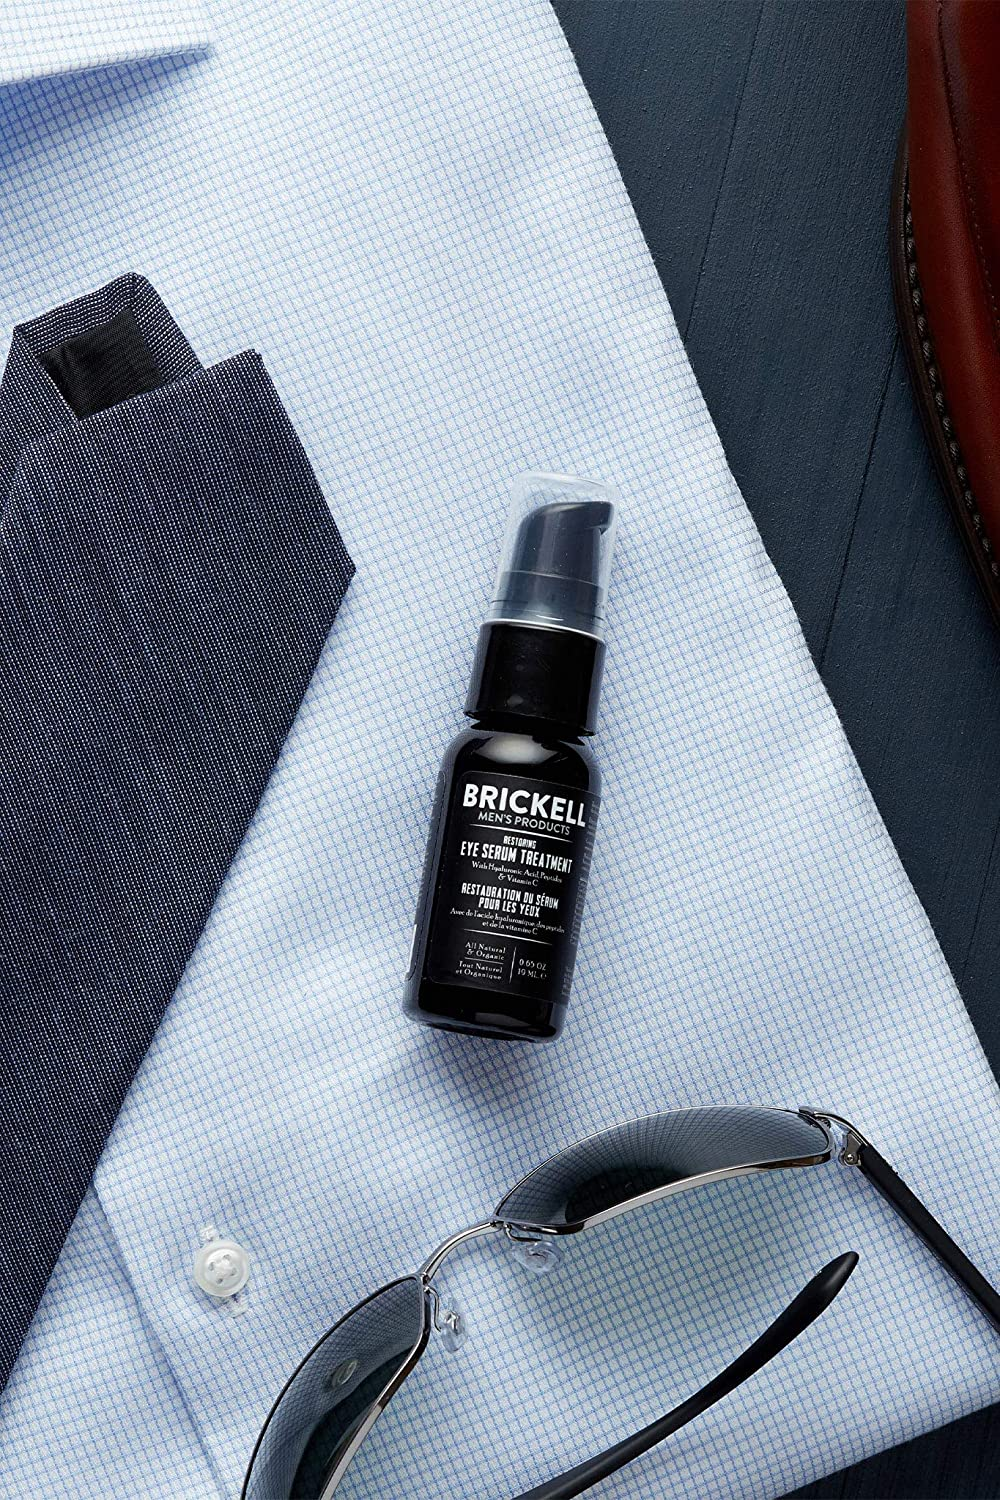 Brickell Men's Restoring Eye Serum Treatment for Men, Natural and Organic Eye Serum to Firm Wrinkles, Reduce Dark Circles, and Promote Youthful Skin, 0.65 Ounce, Unscented: Beauty